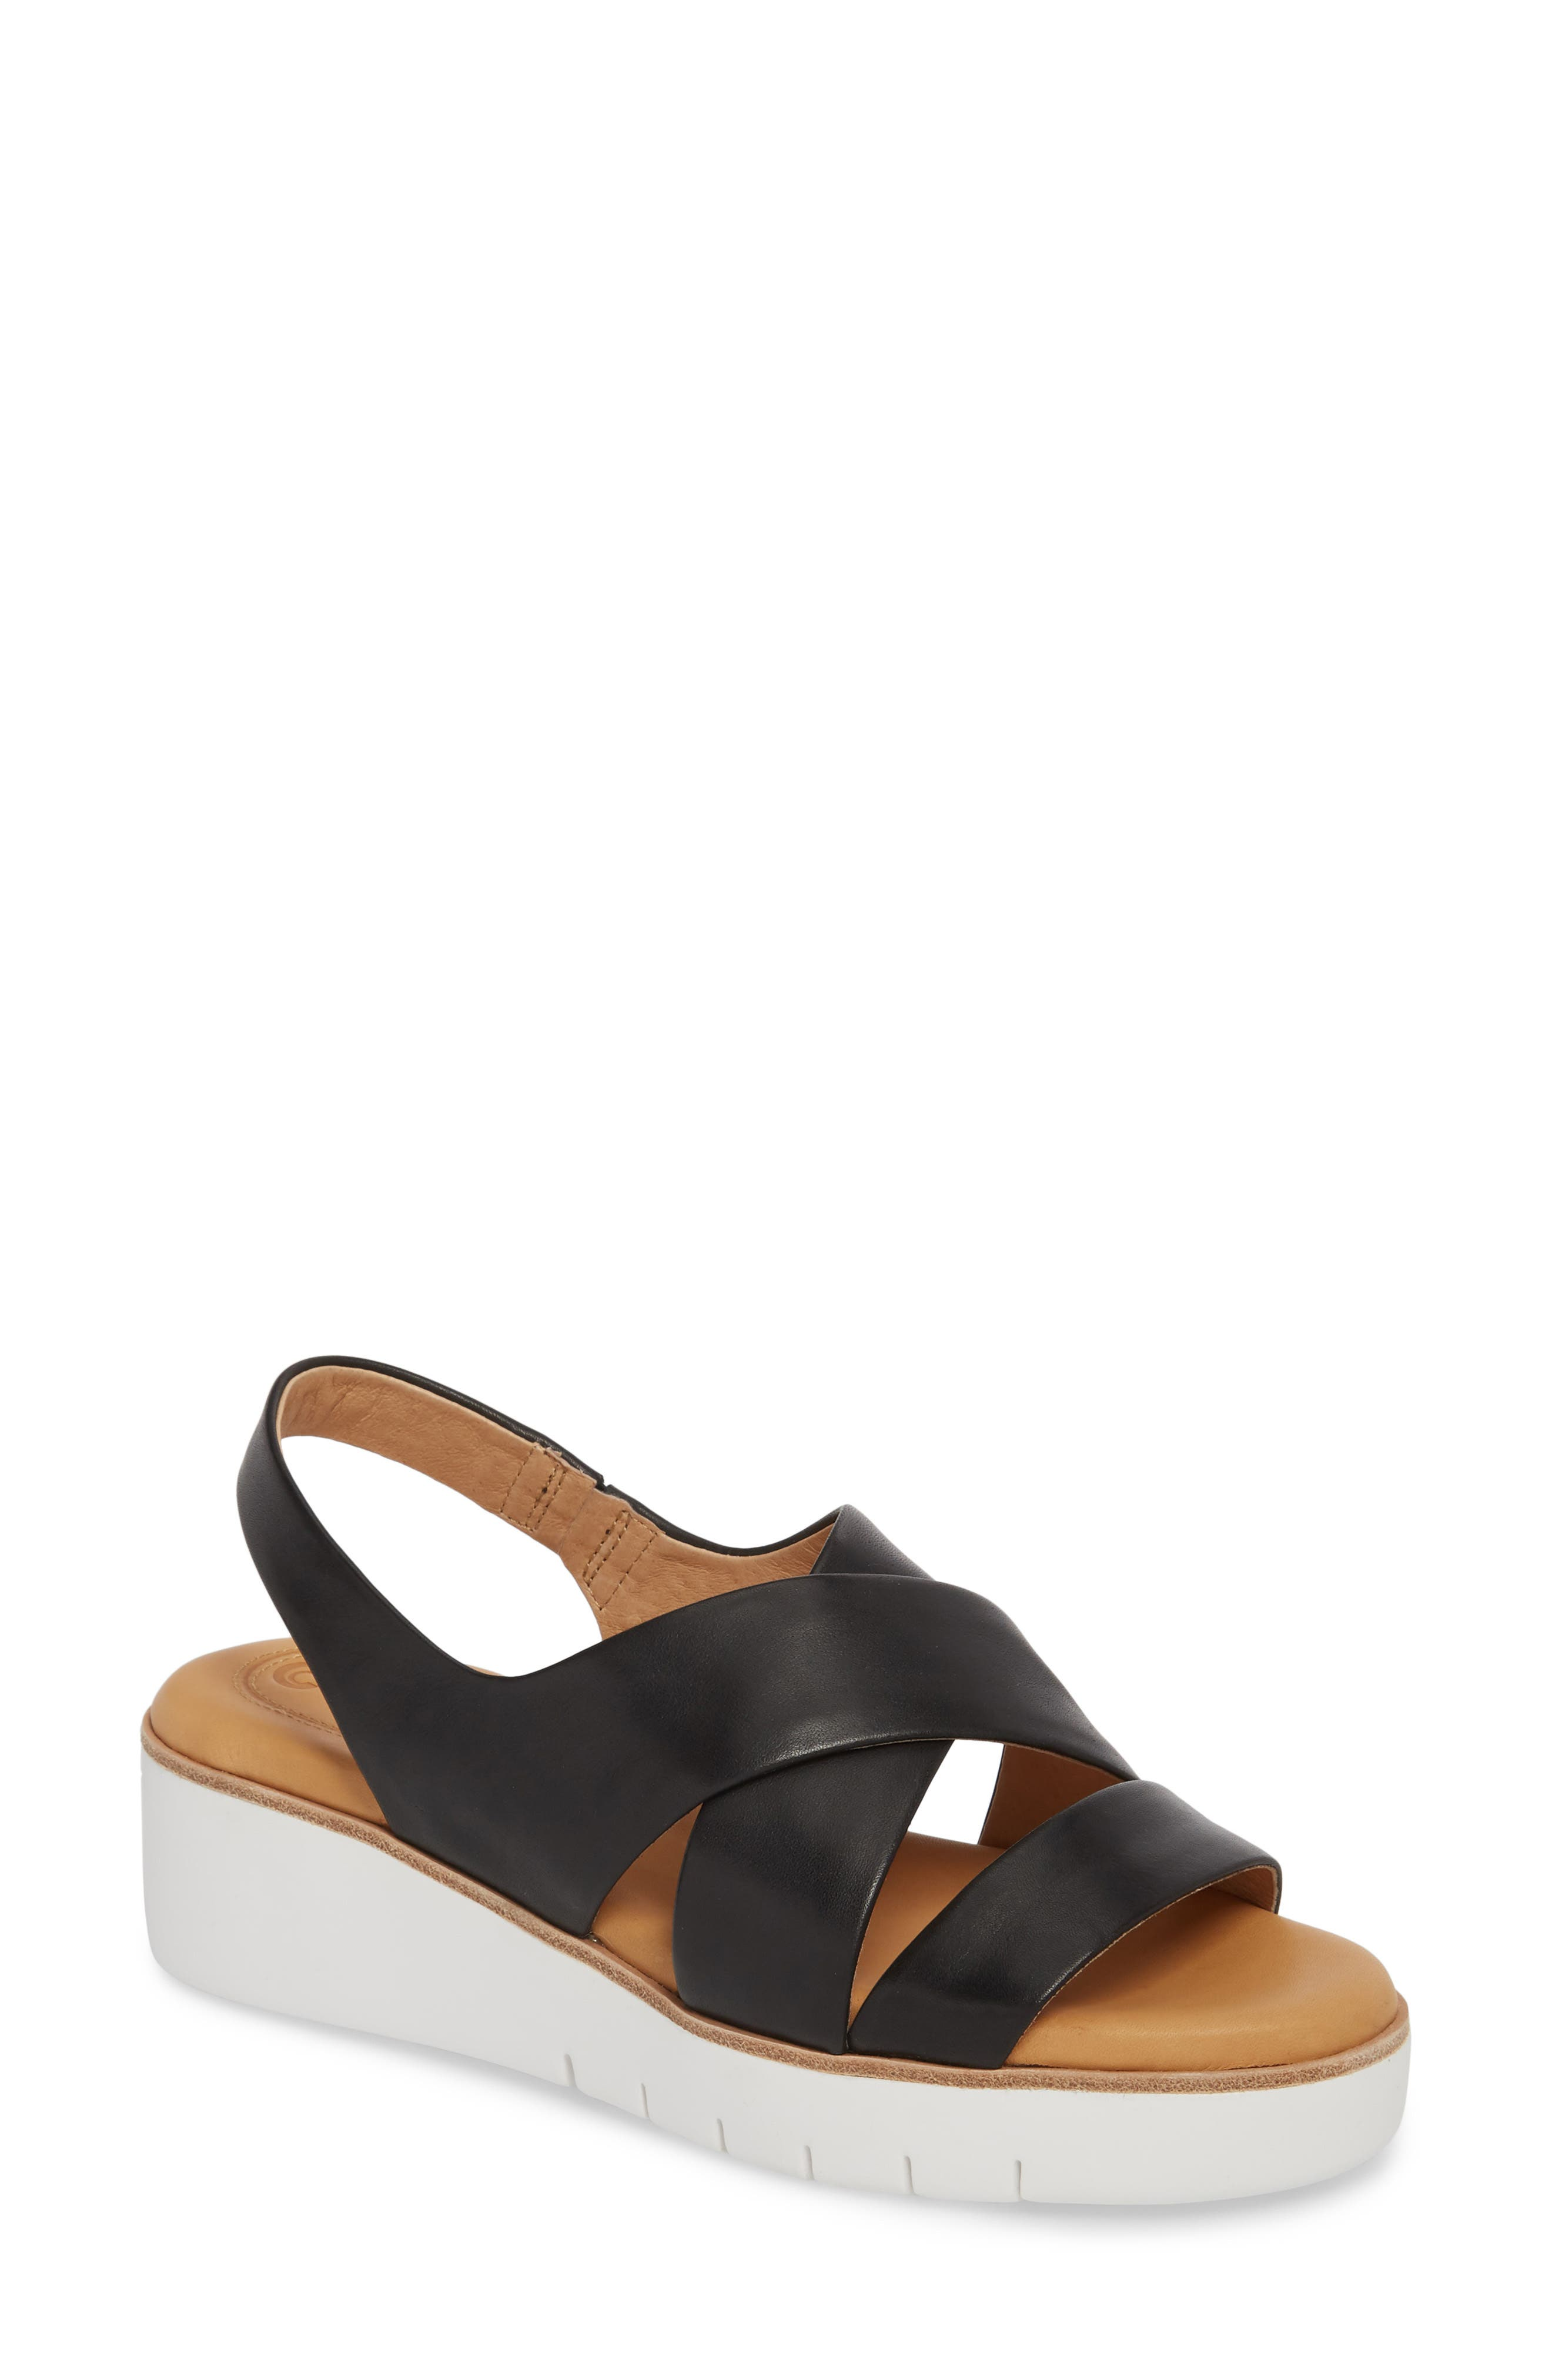 Brinney Wedge Sandal,                             Main thumbnail 1, color,                             BLACK LEATHER